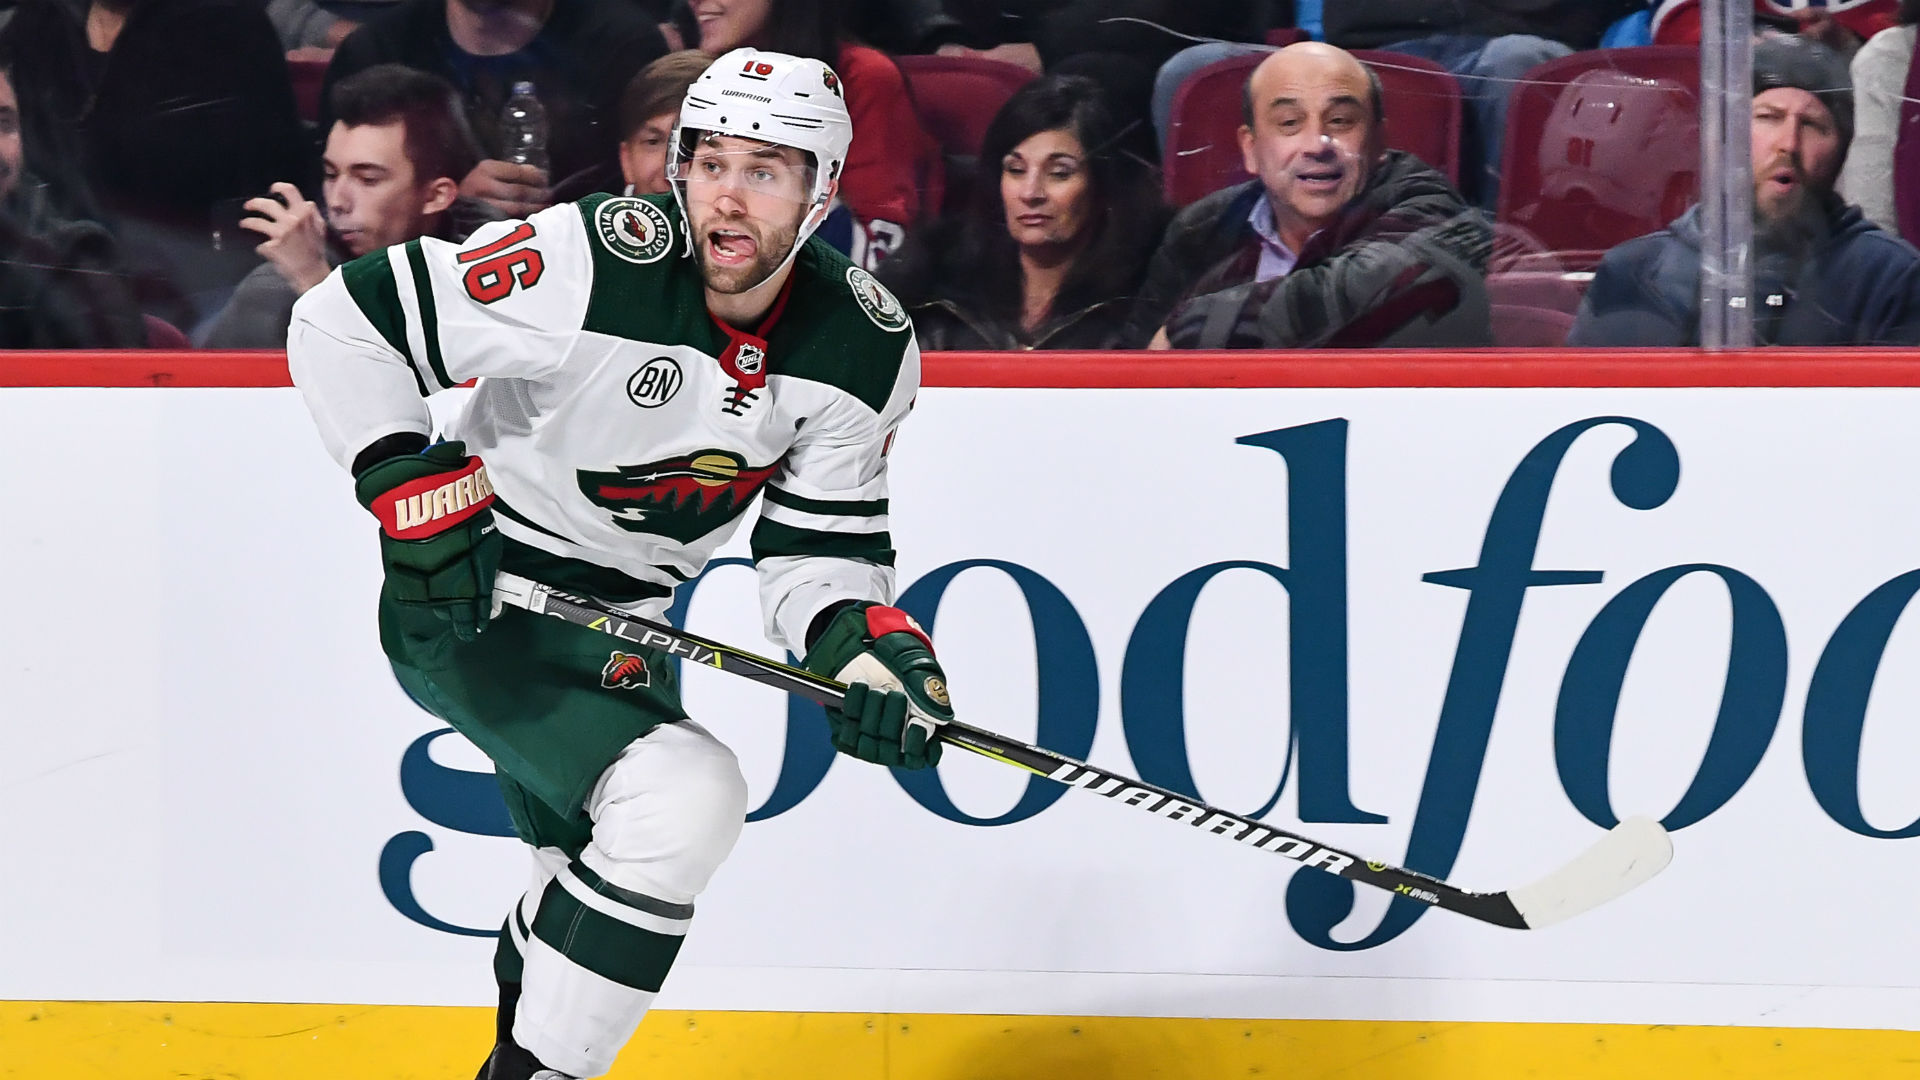 NHL Rumor Roundup: Wild almost traded Jason Zucker to Flames. Is his time in Minnesota done?